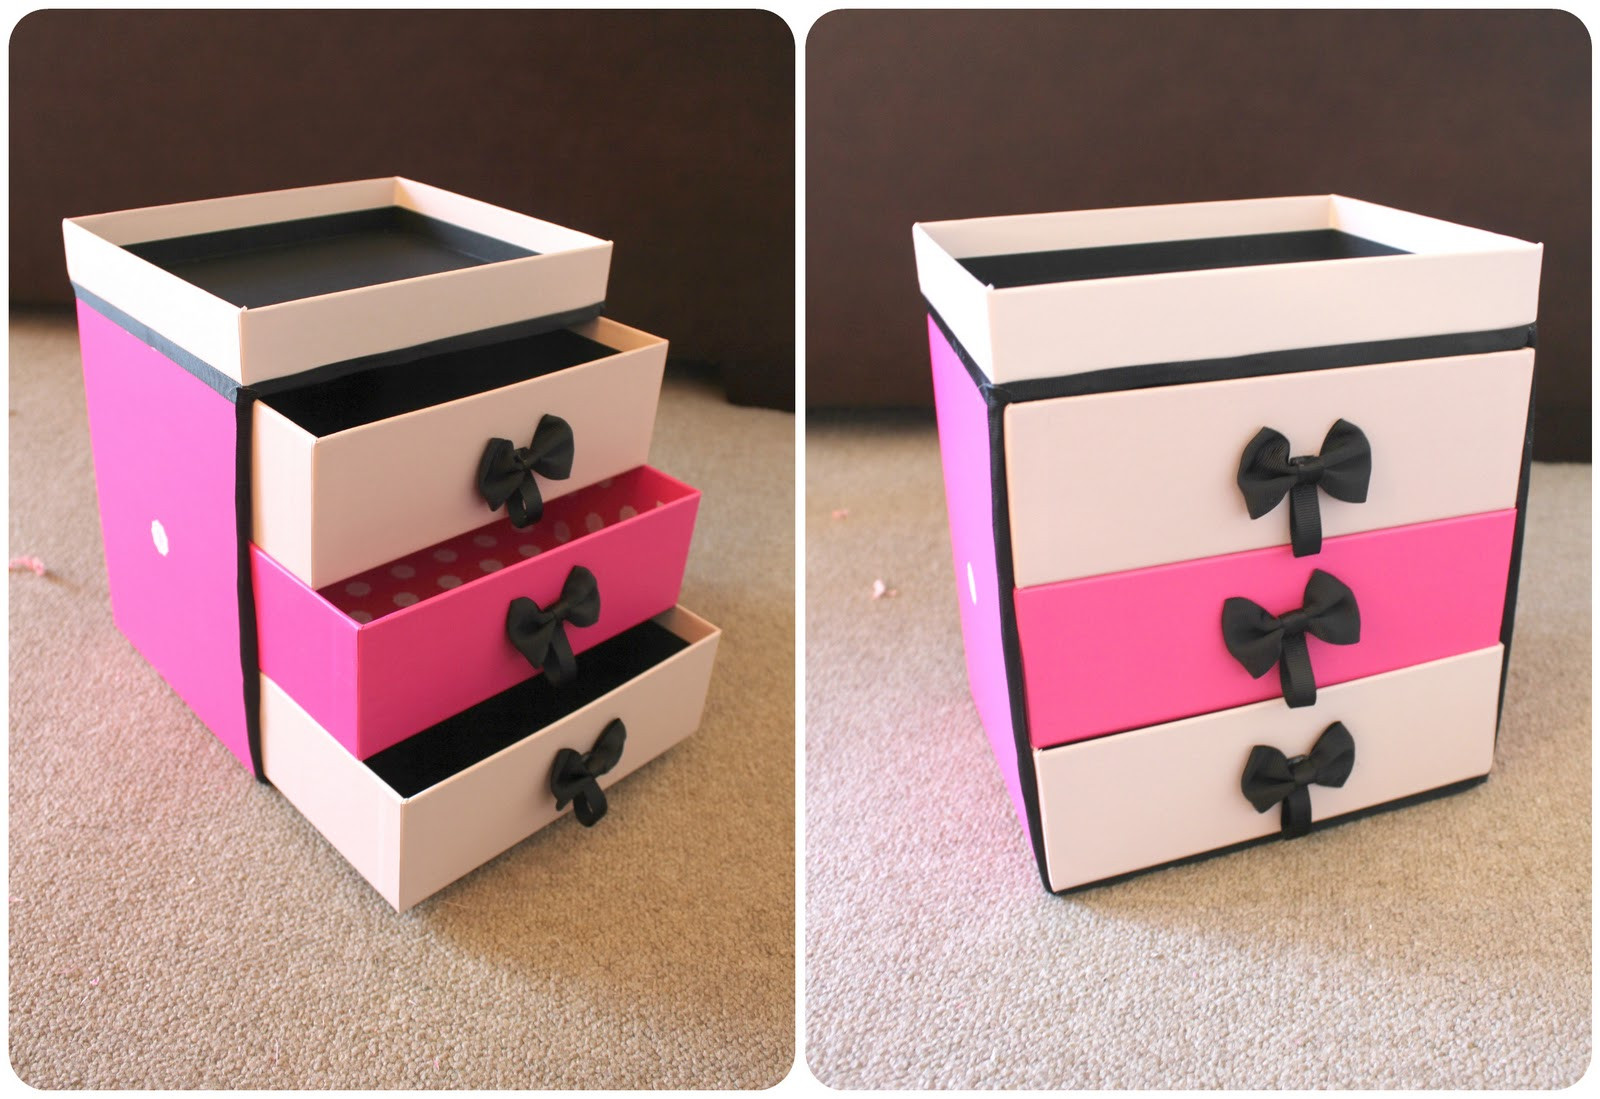 Best ideas about Shoes Box DIY . Save or Pin Peachfizzz DIY Make Up Storage Now.